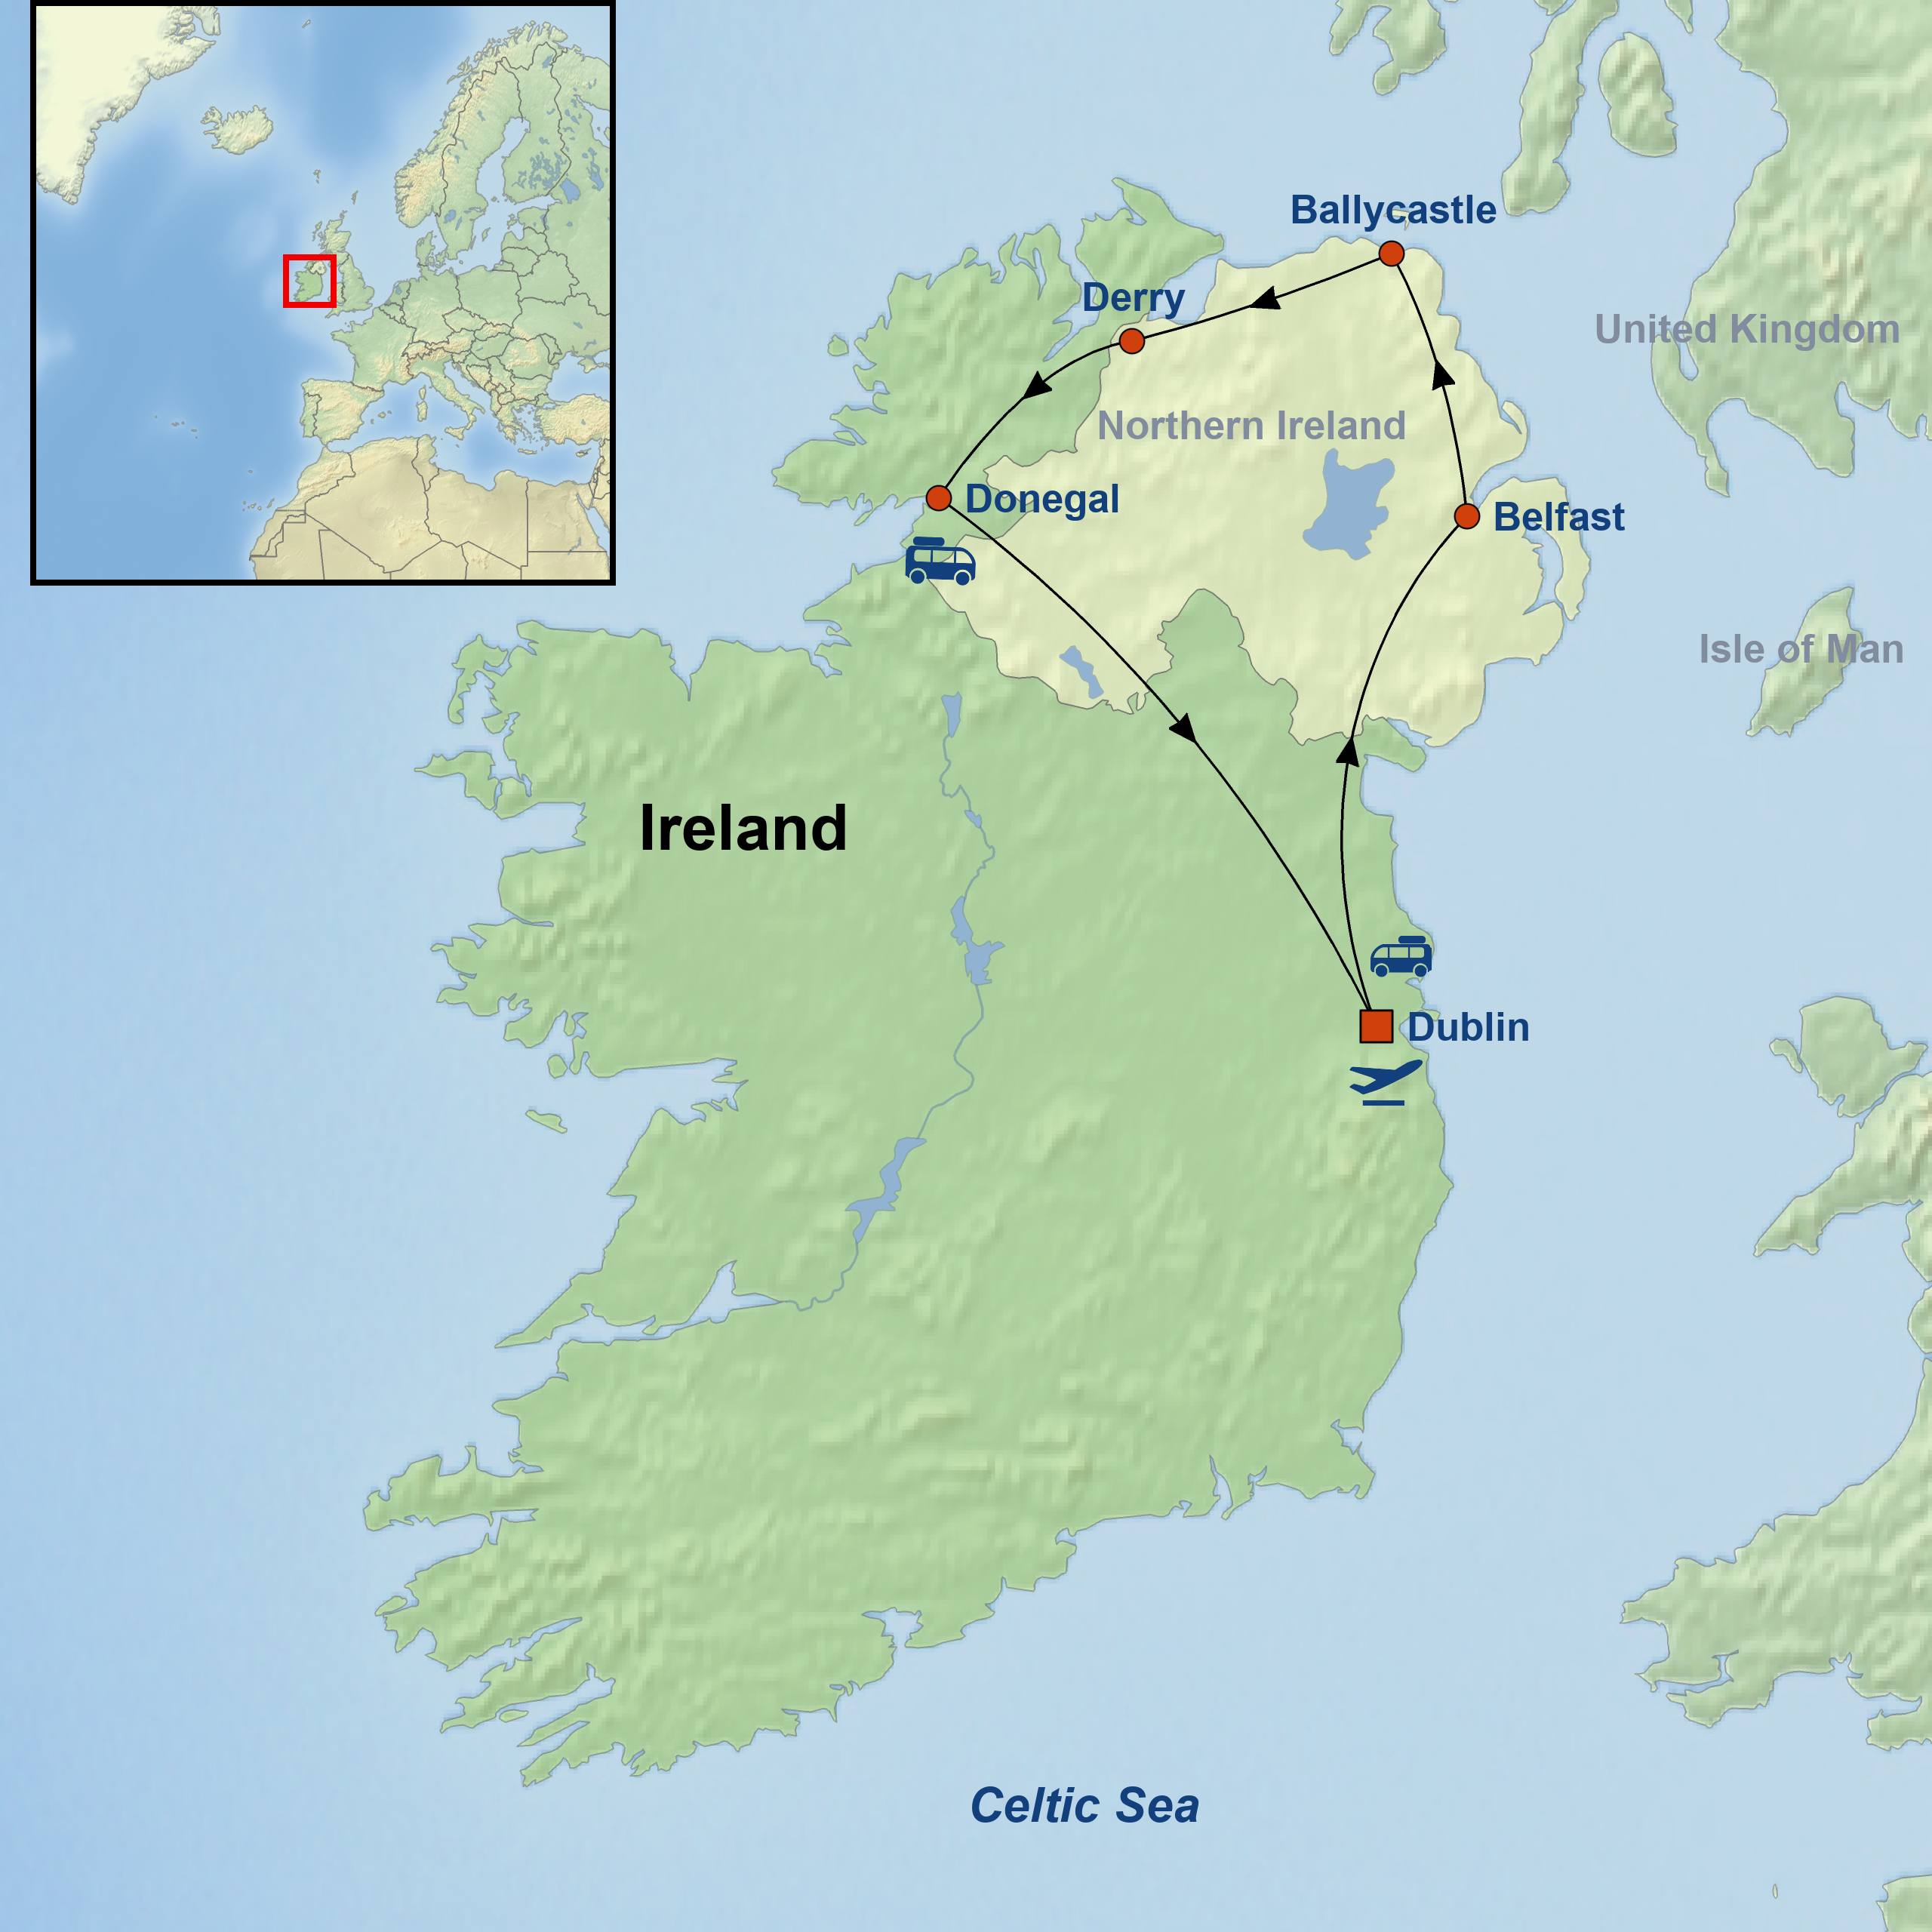 Game of Thrones in Ireland